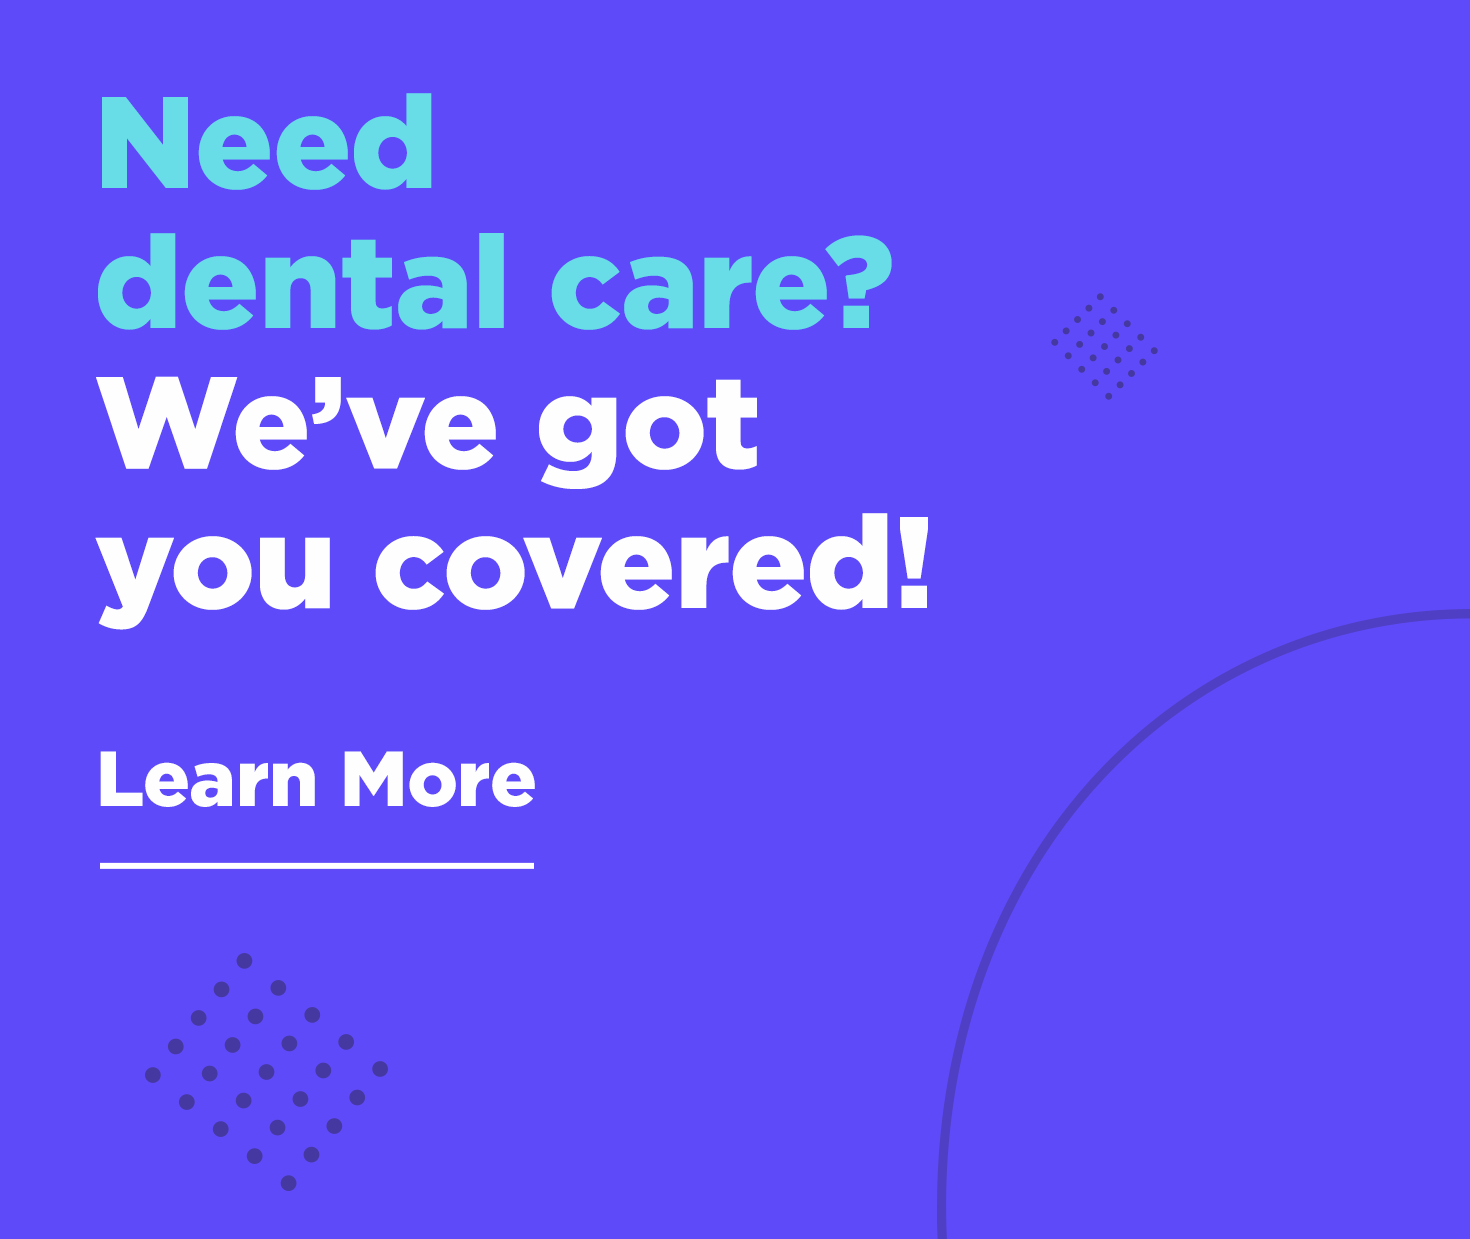 Need dental care? We've got you covered! Learn More. - Gilbert Crossroads Kids' Dentists & Orthodontics